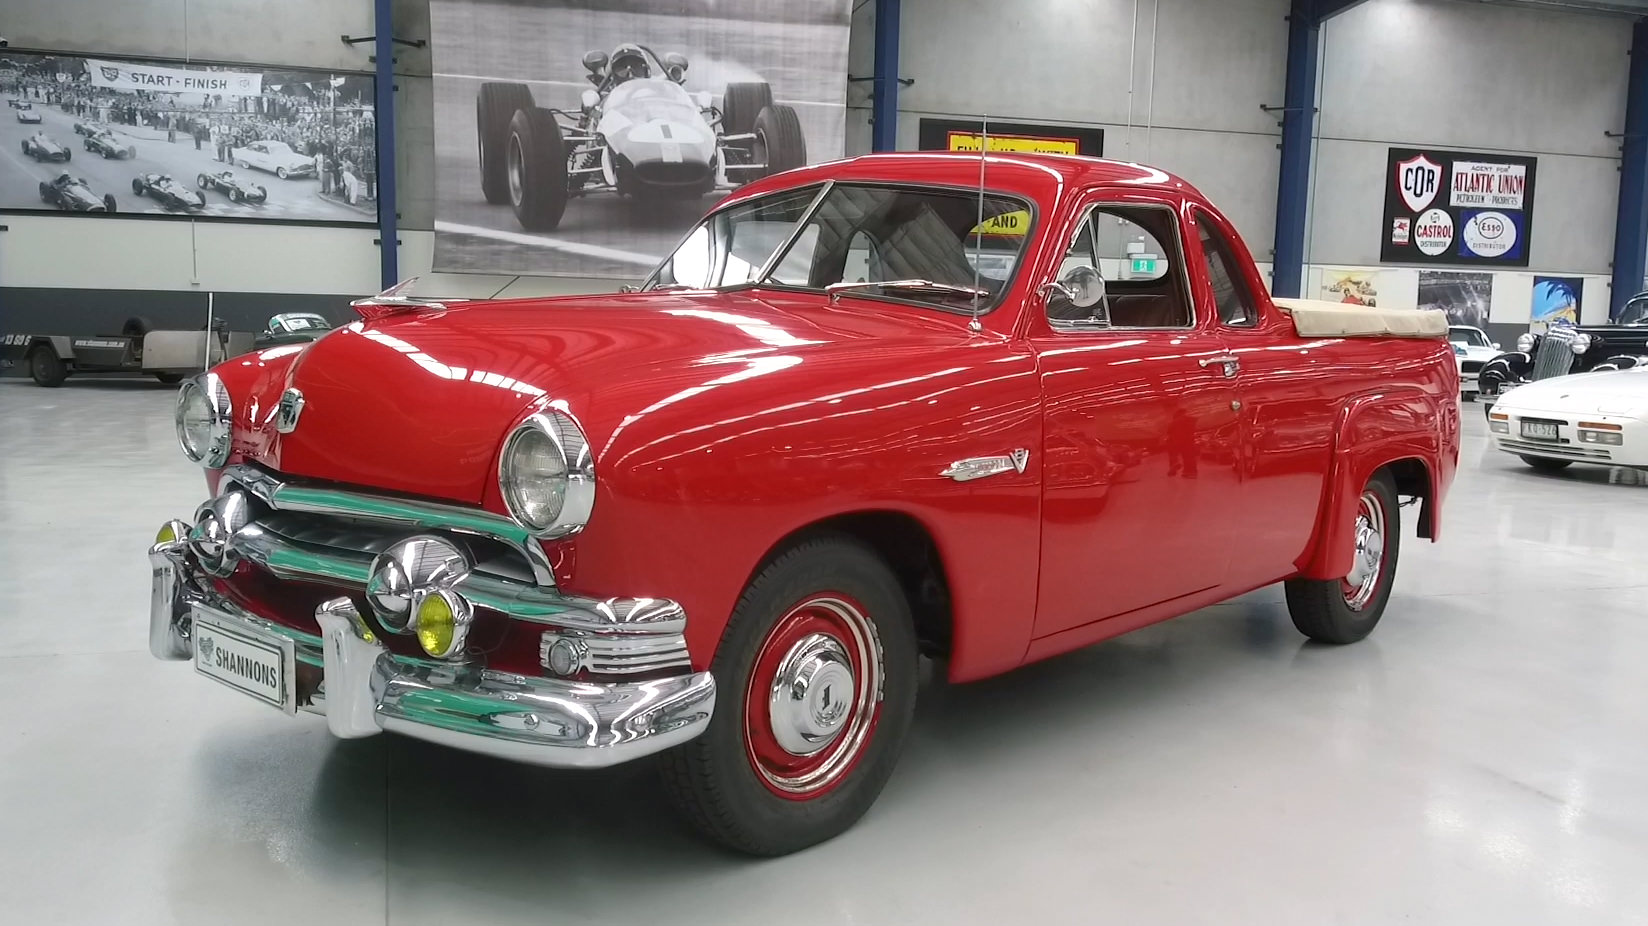 1951 Ford De Luxe Coupe Utility - 2021 Shannons Summer Timed Online Auction